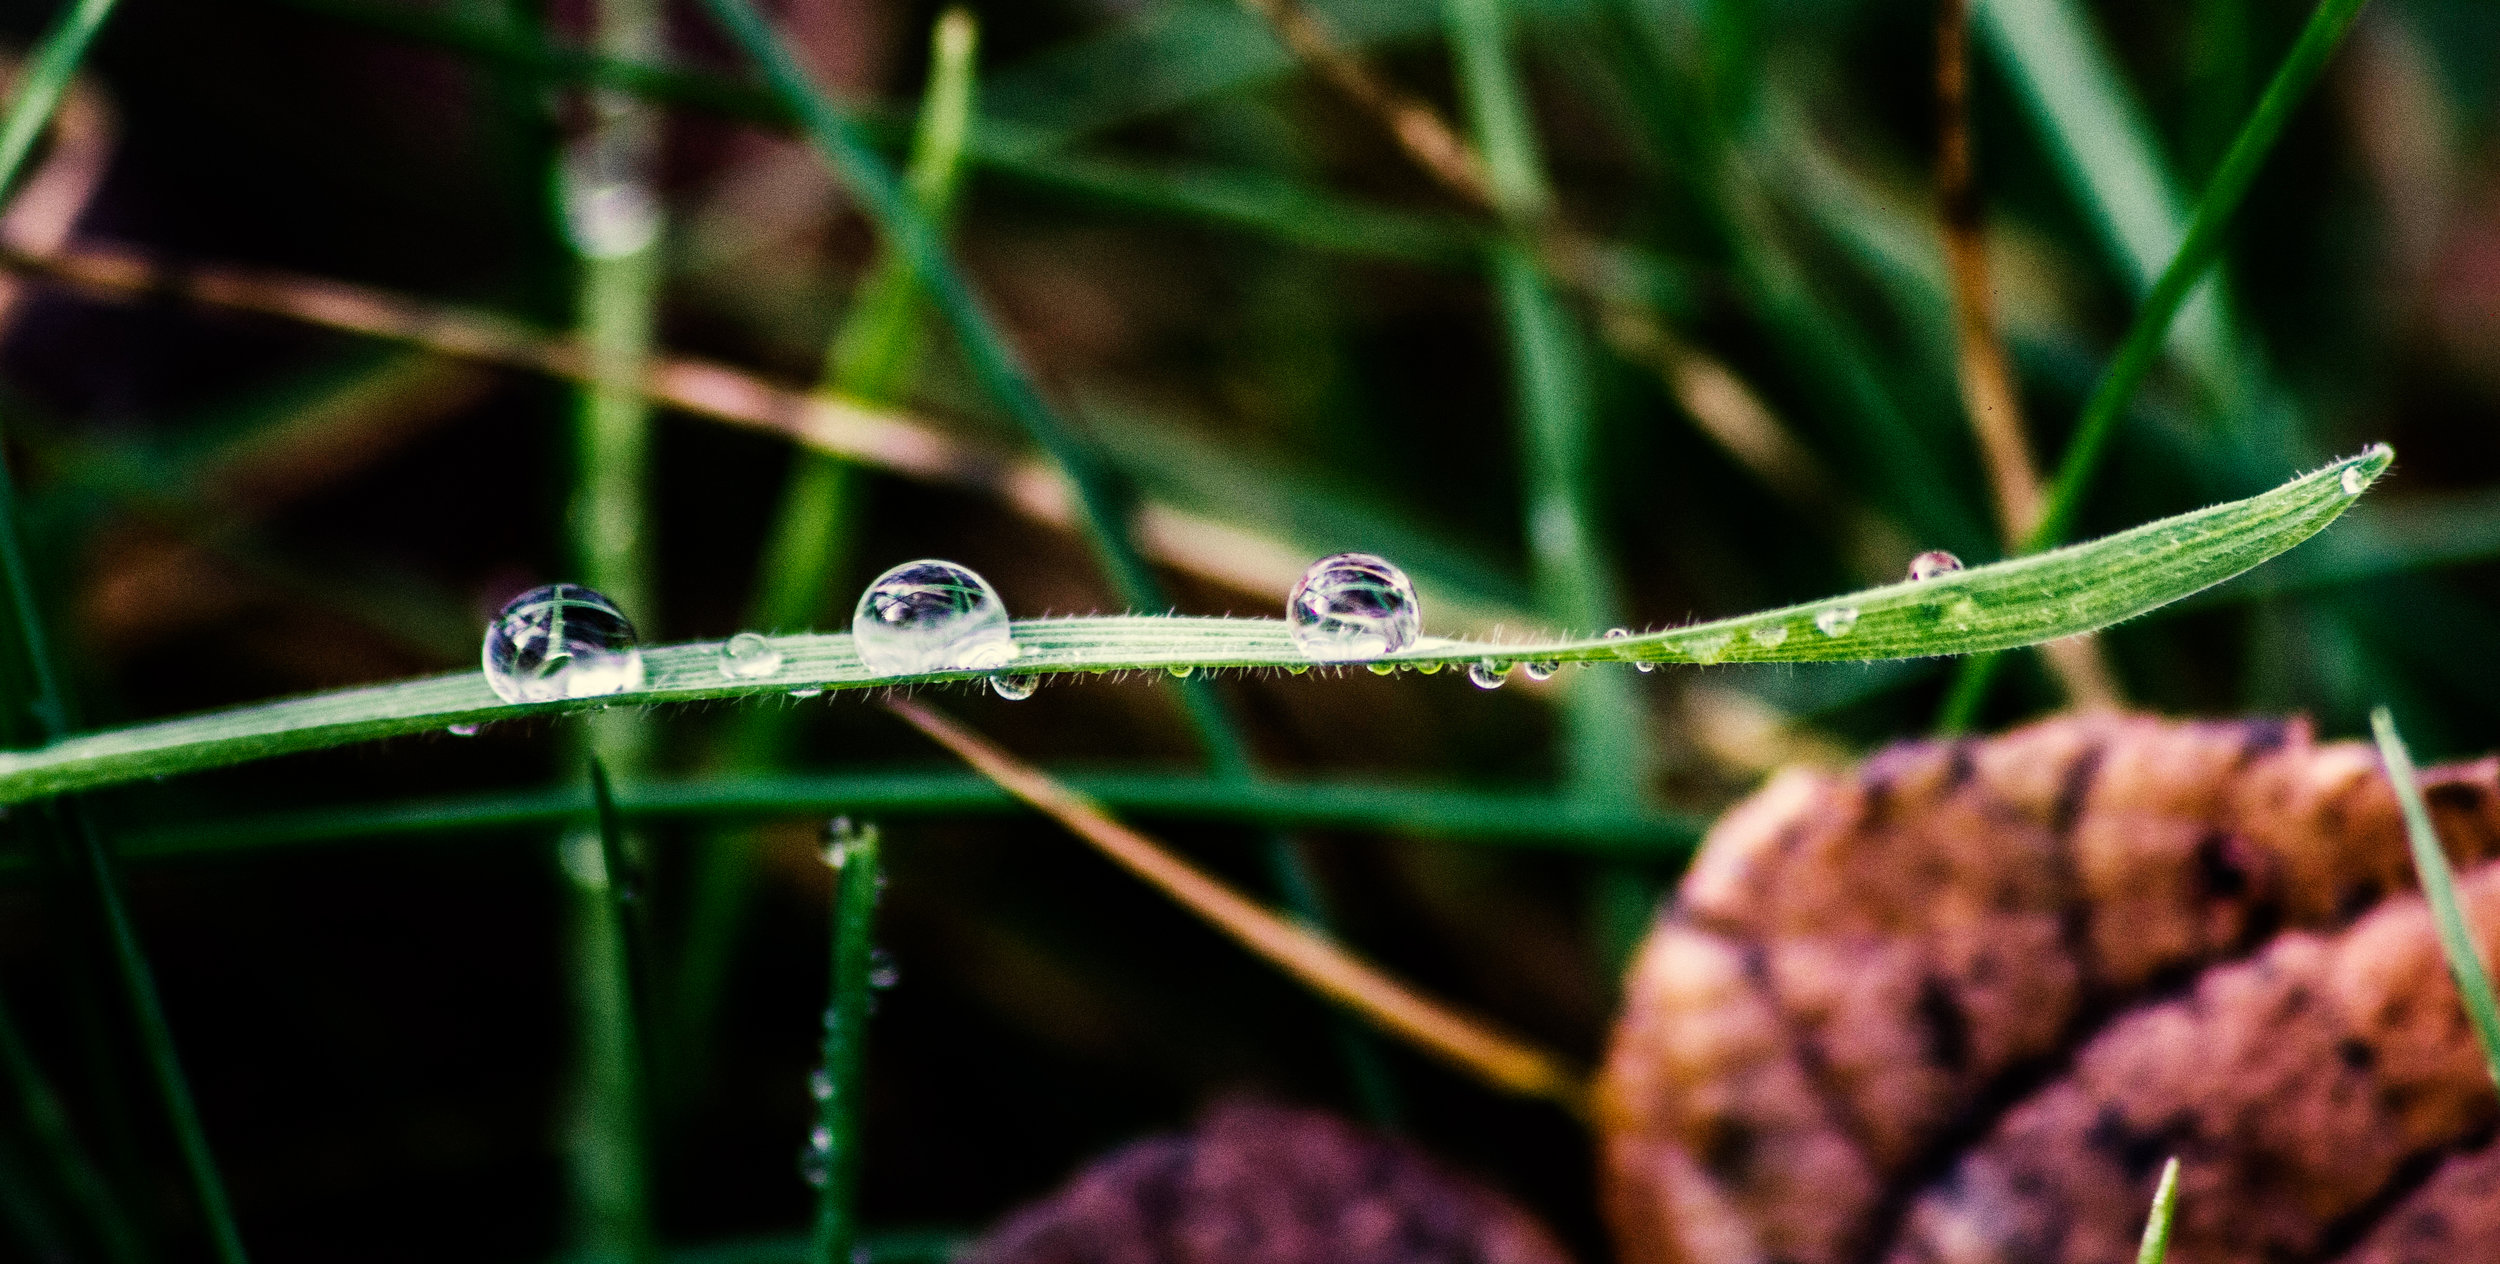 Water Droplets On A Blade Of Grass!